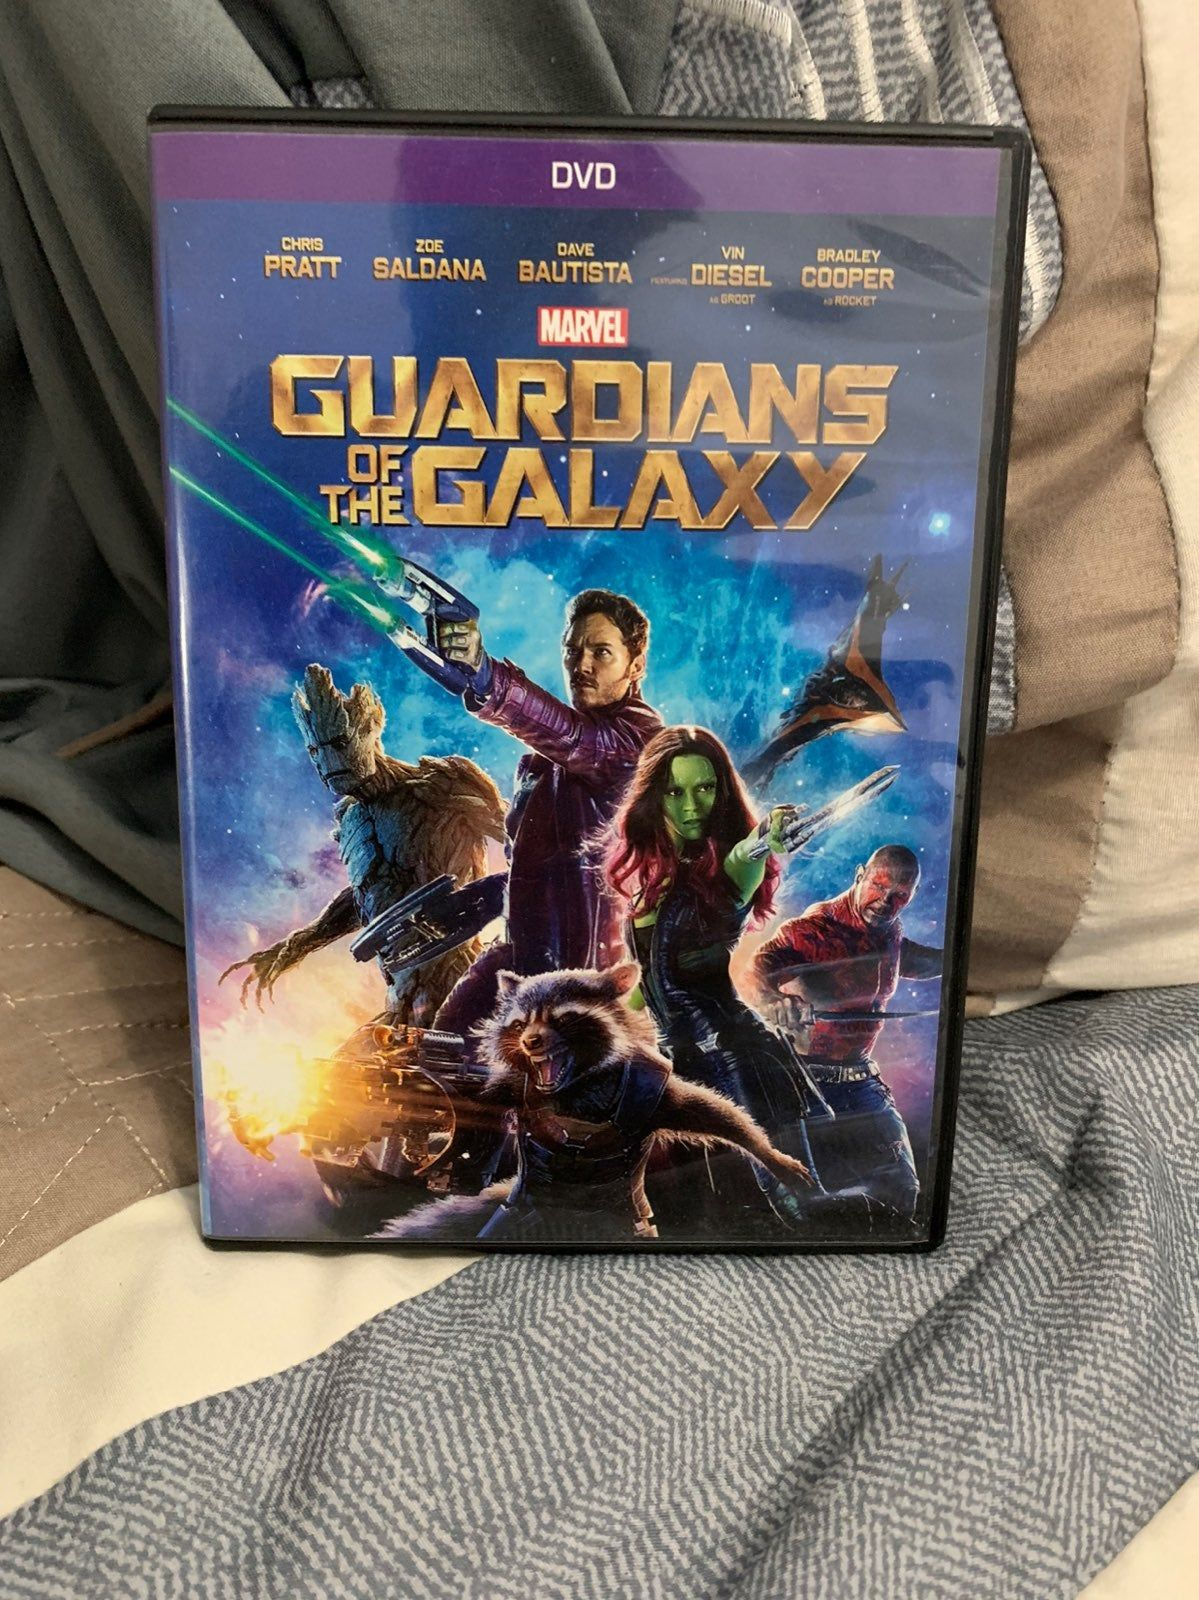 Guardians of the galaxy dvd mercari in 2020 guardians